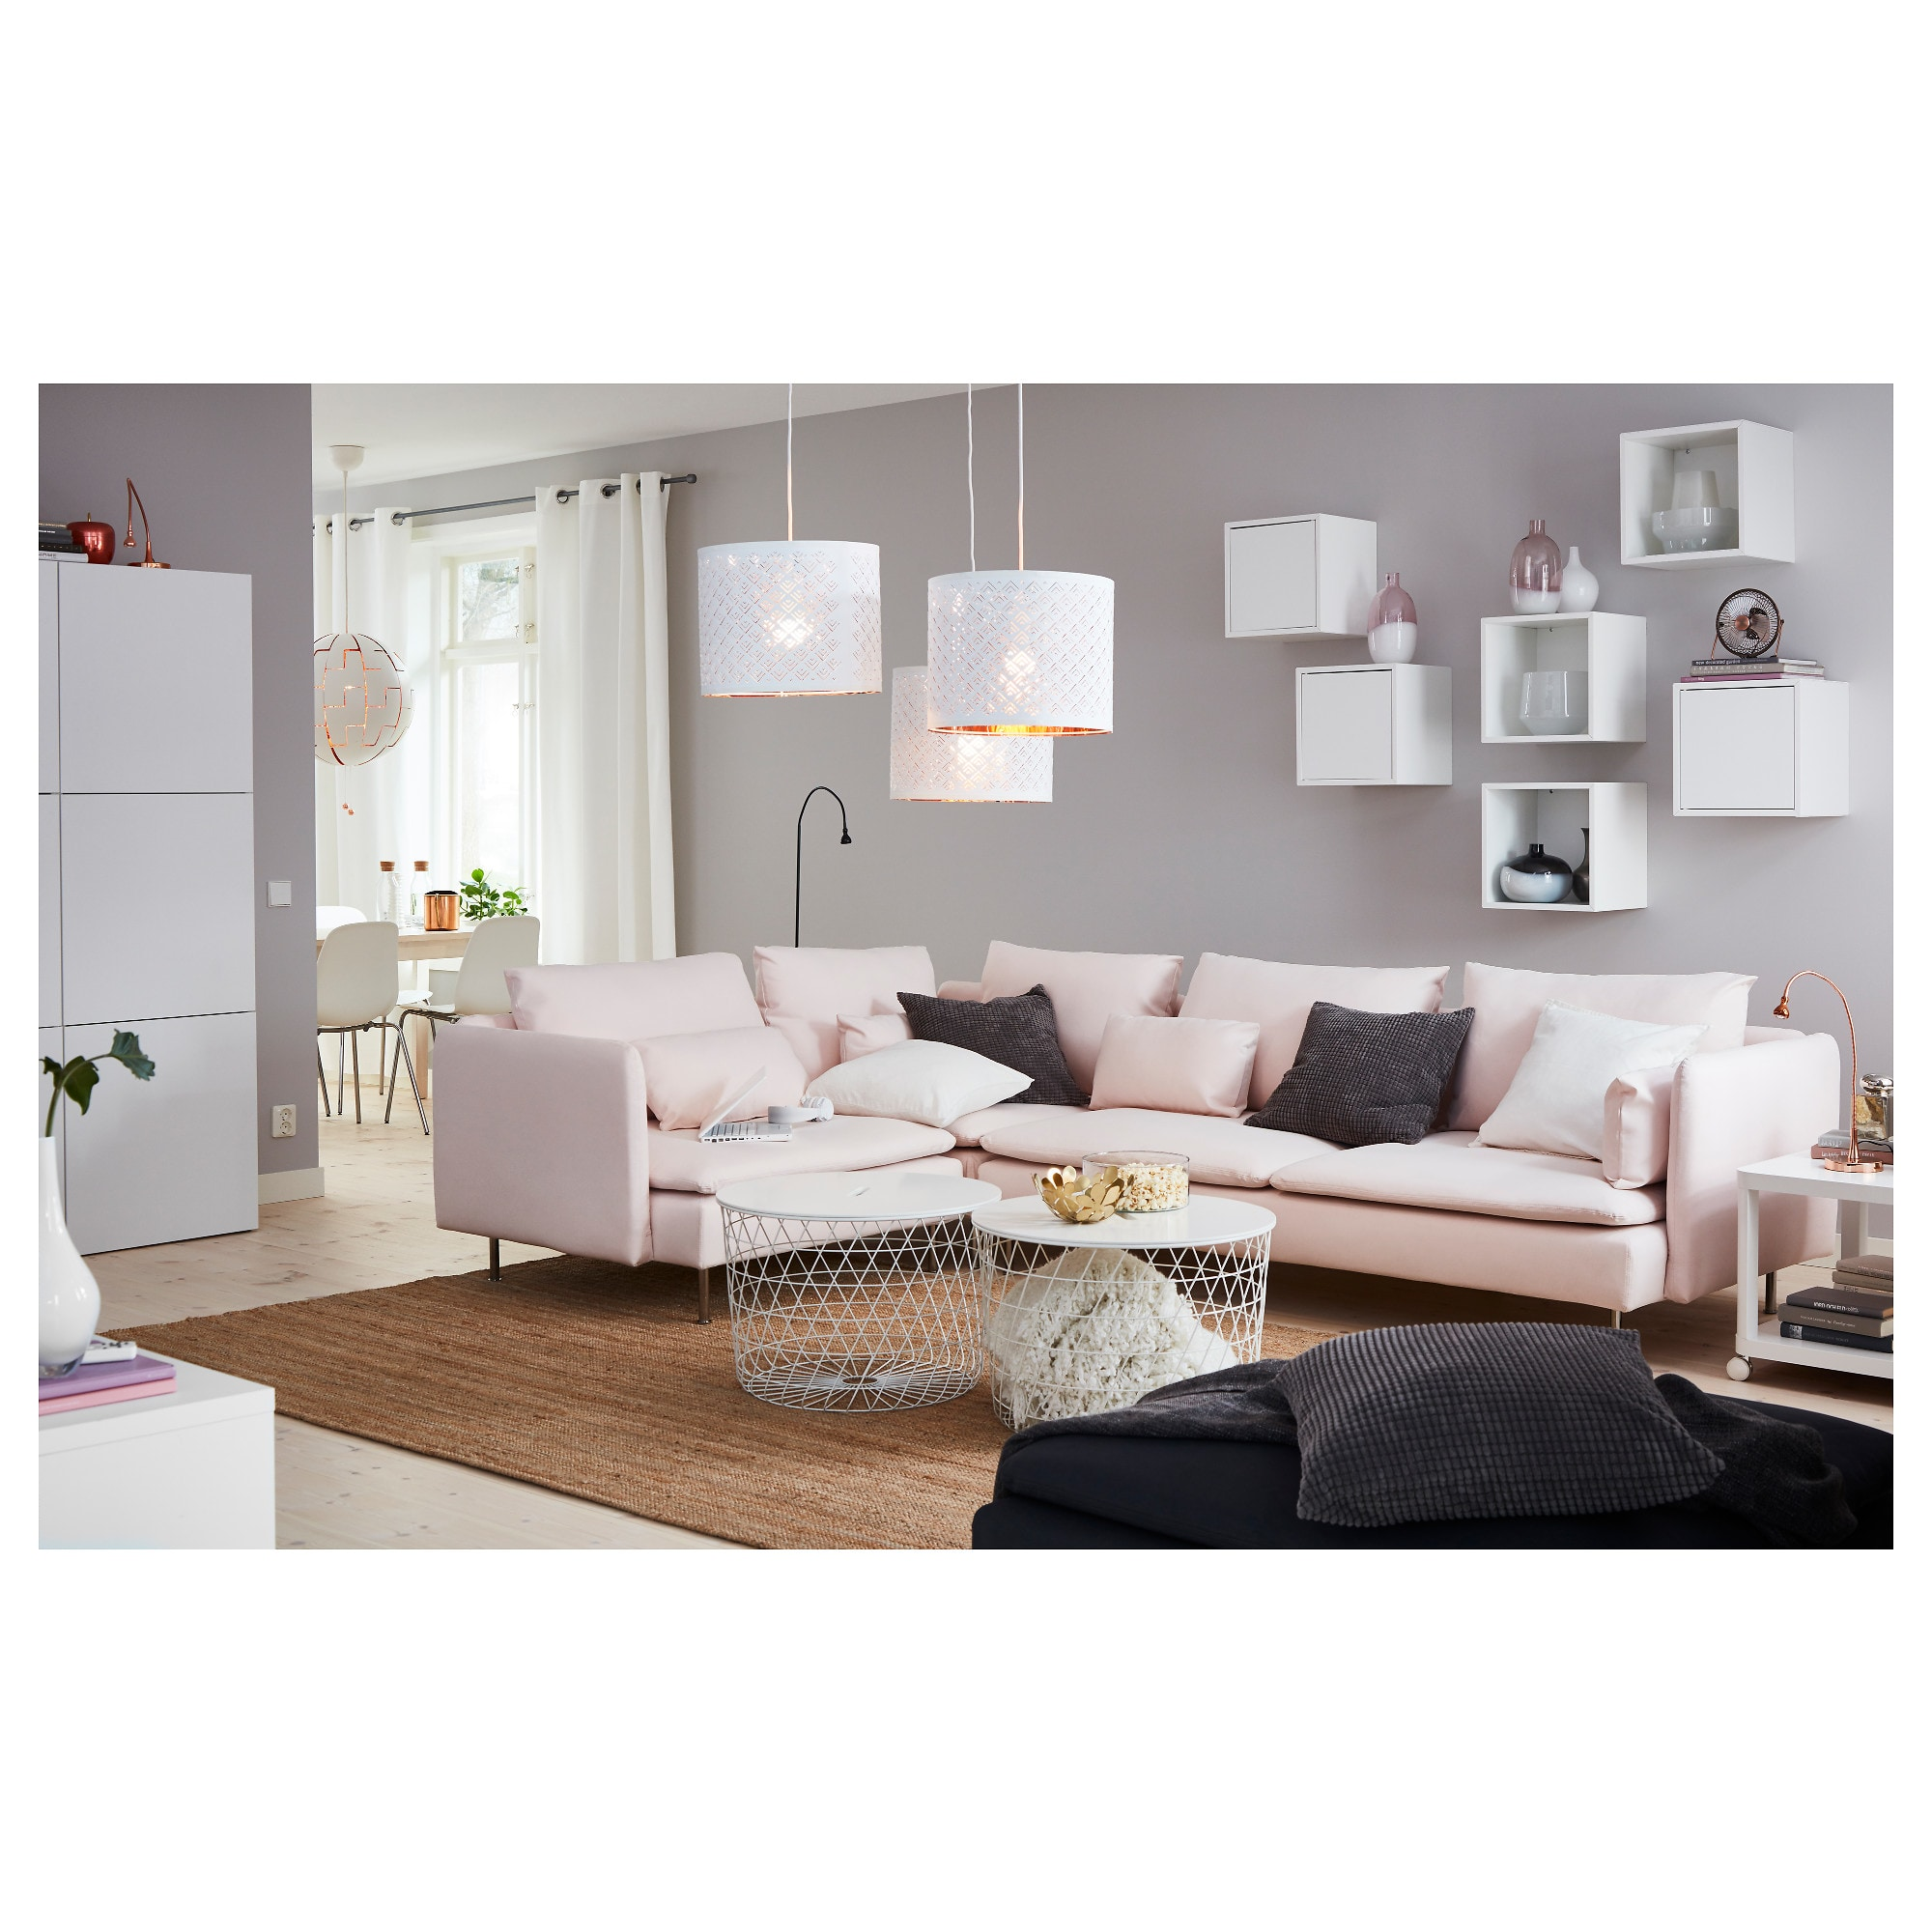 Living Room Furniture Ikea: IKEA - KVISTBRO Storage Table White In 2019